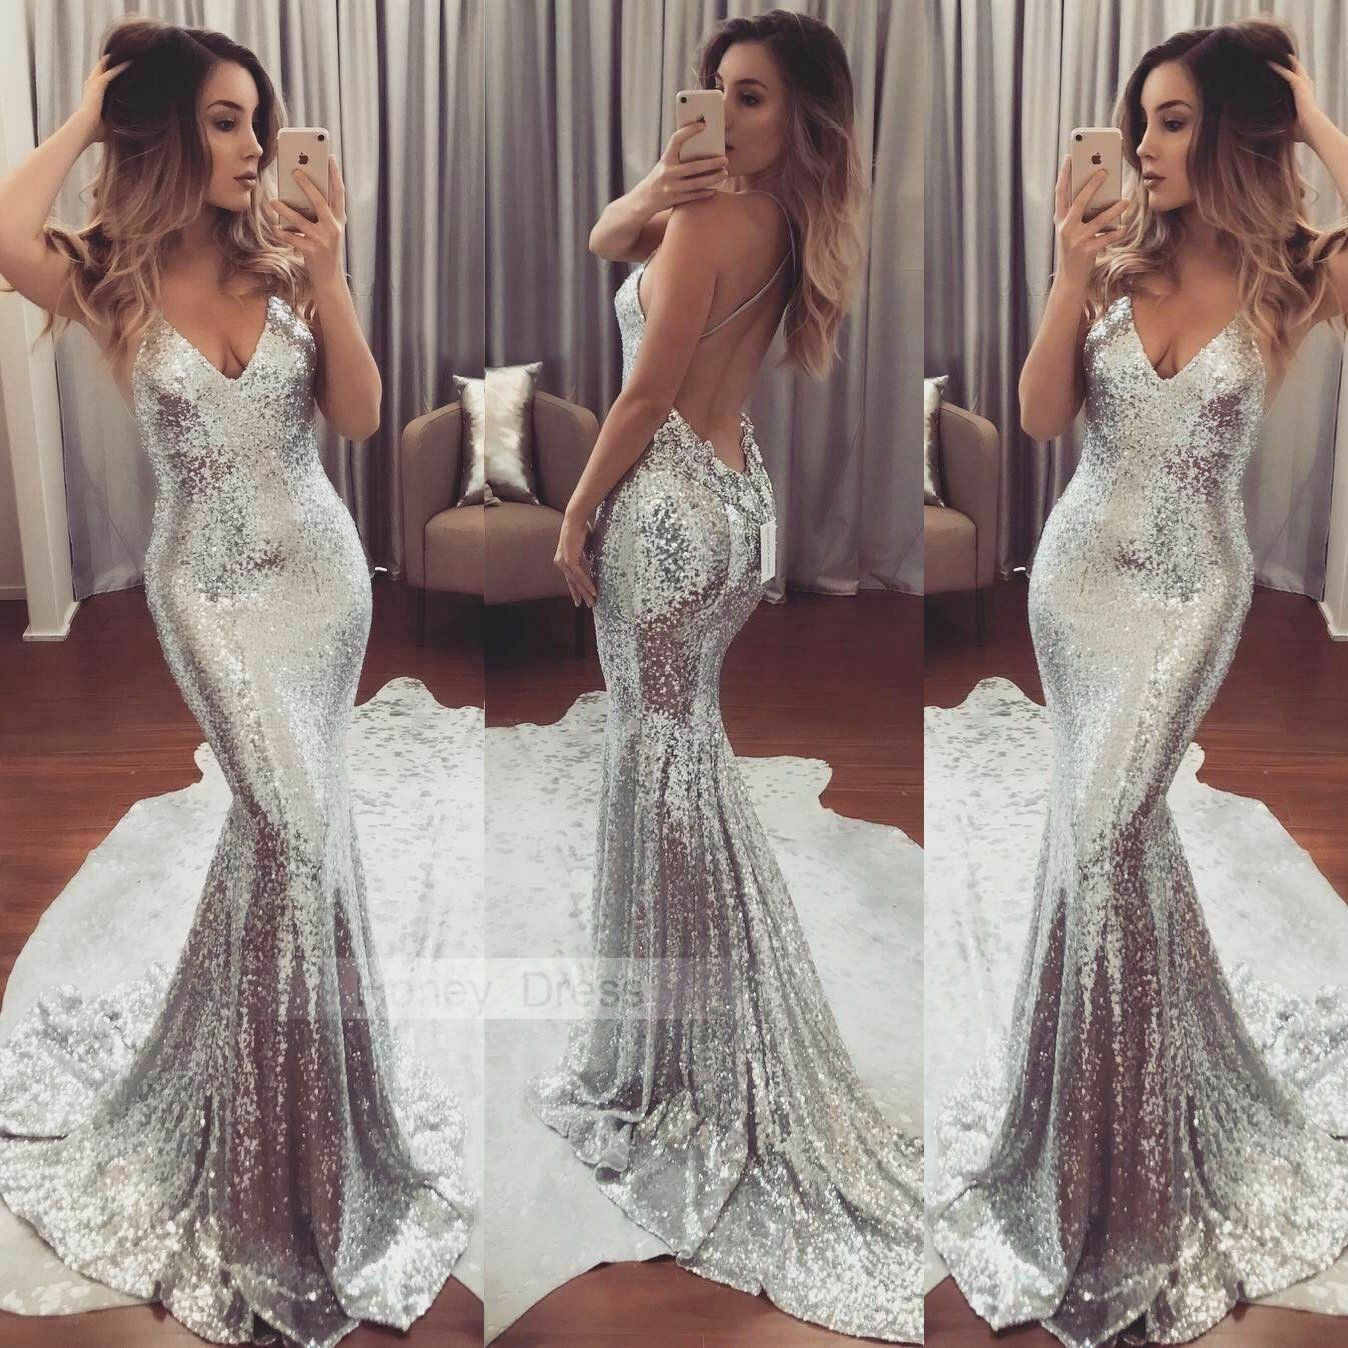 Sexy Women Dress Long Formal Silver Sequin Sequined Dress Strapless Evening Party Tight Dress